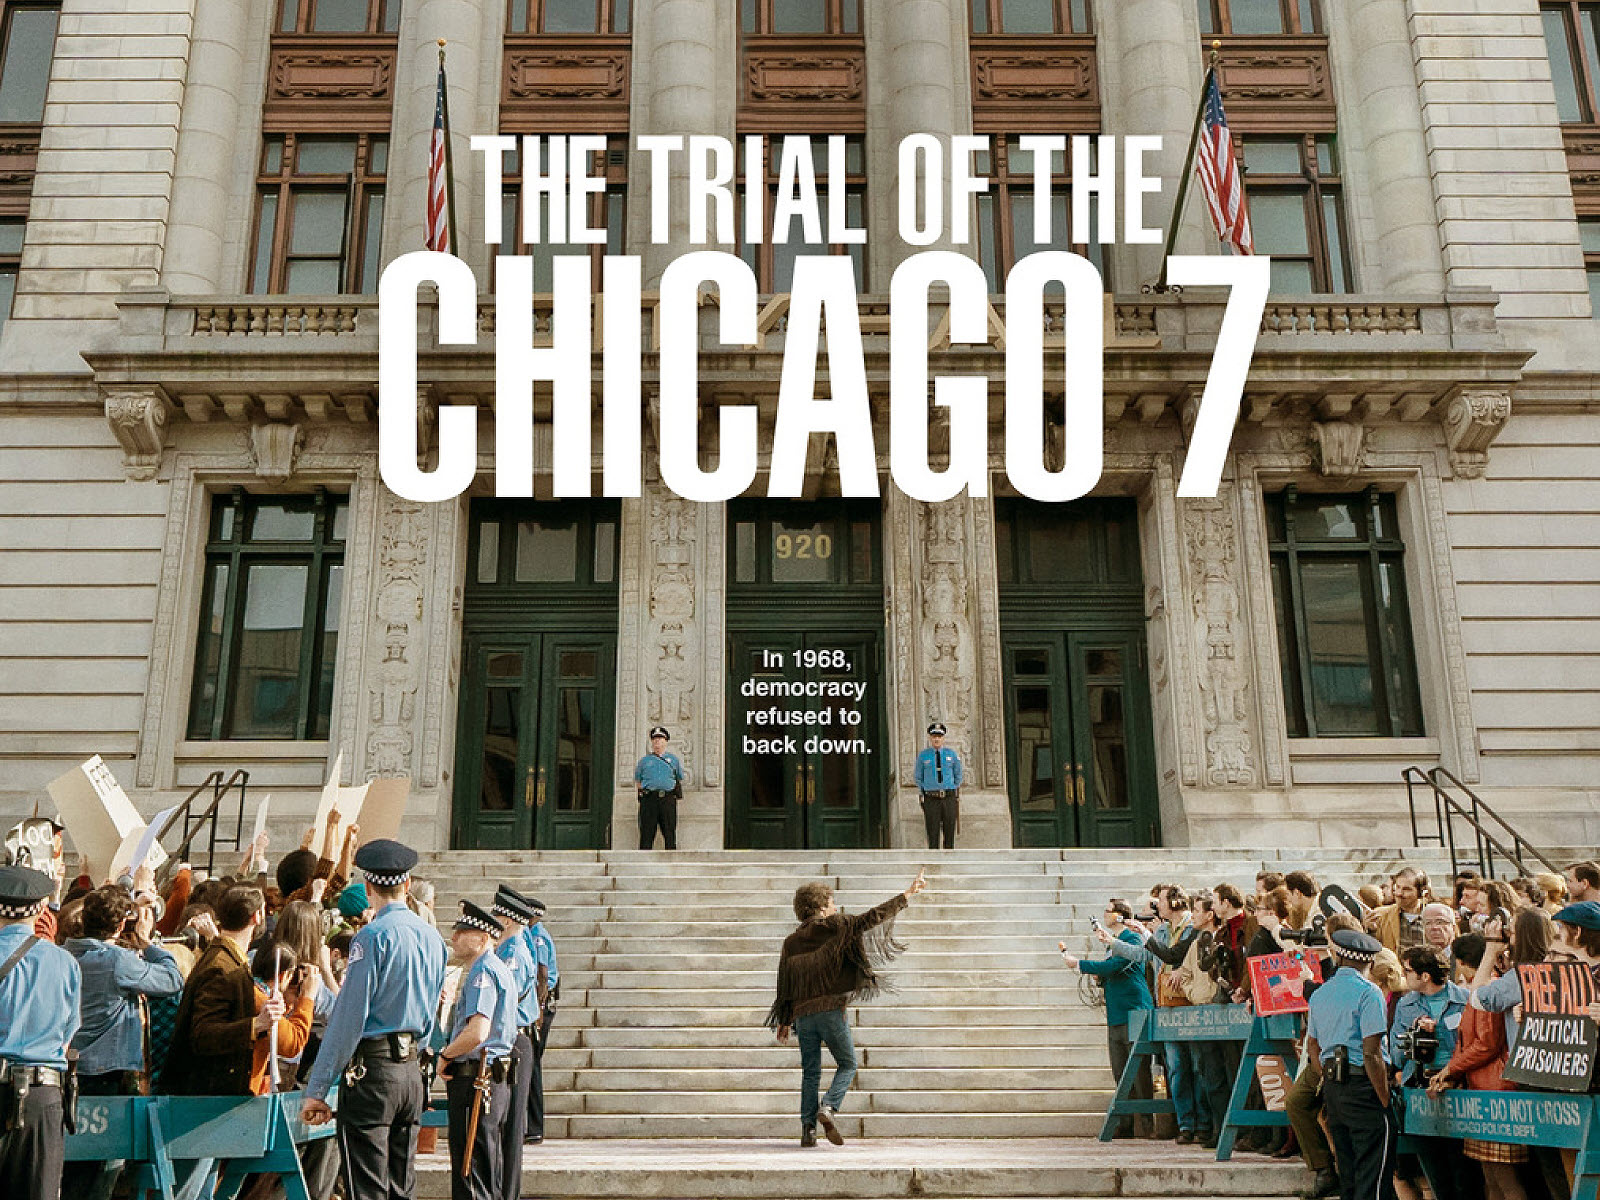 The Trial of the Chicago 7